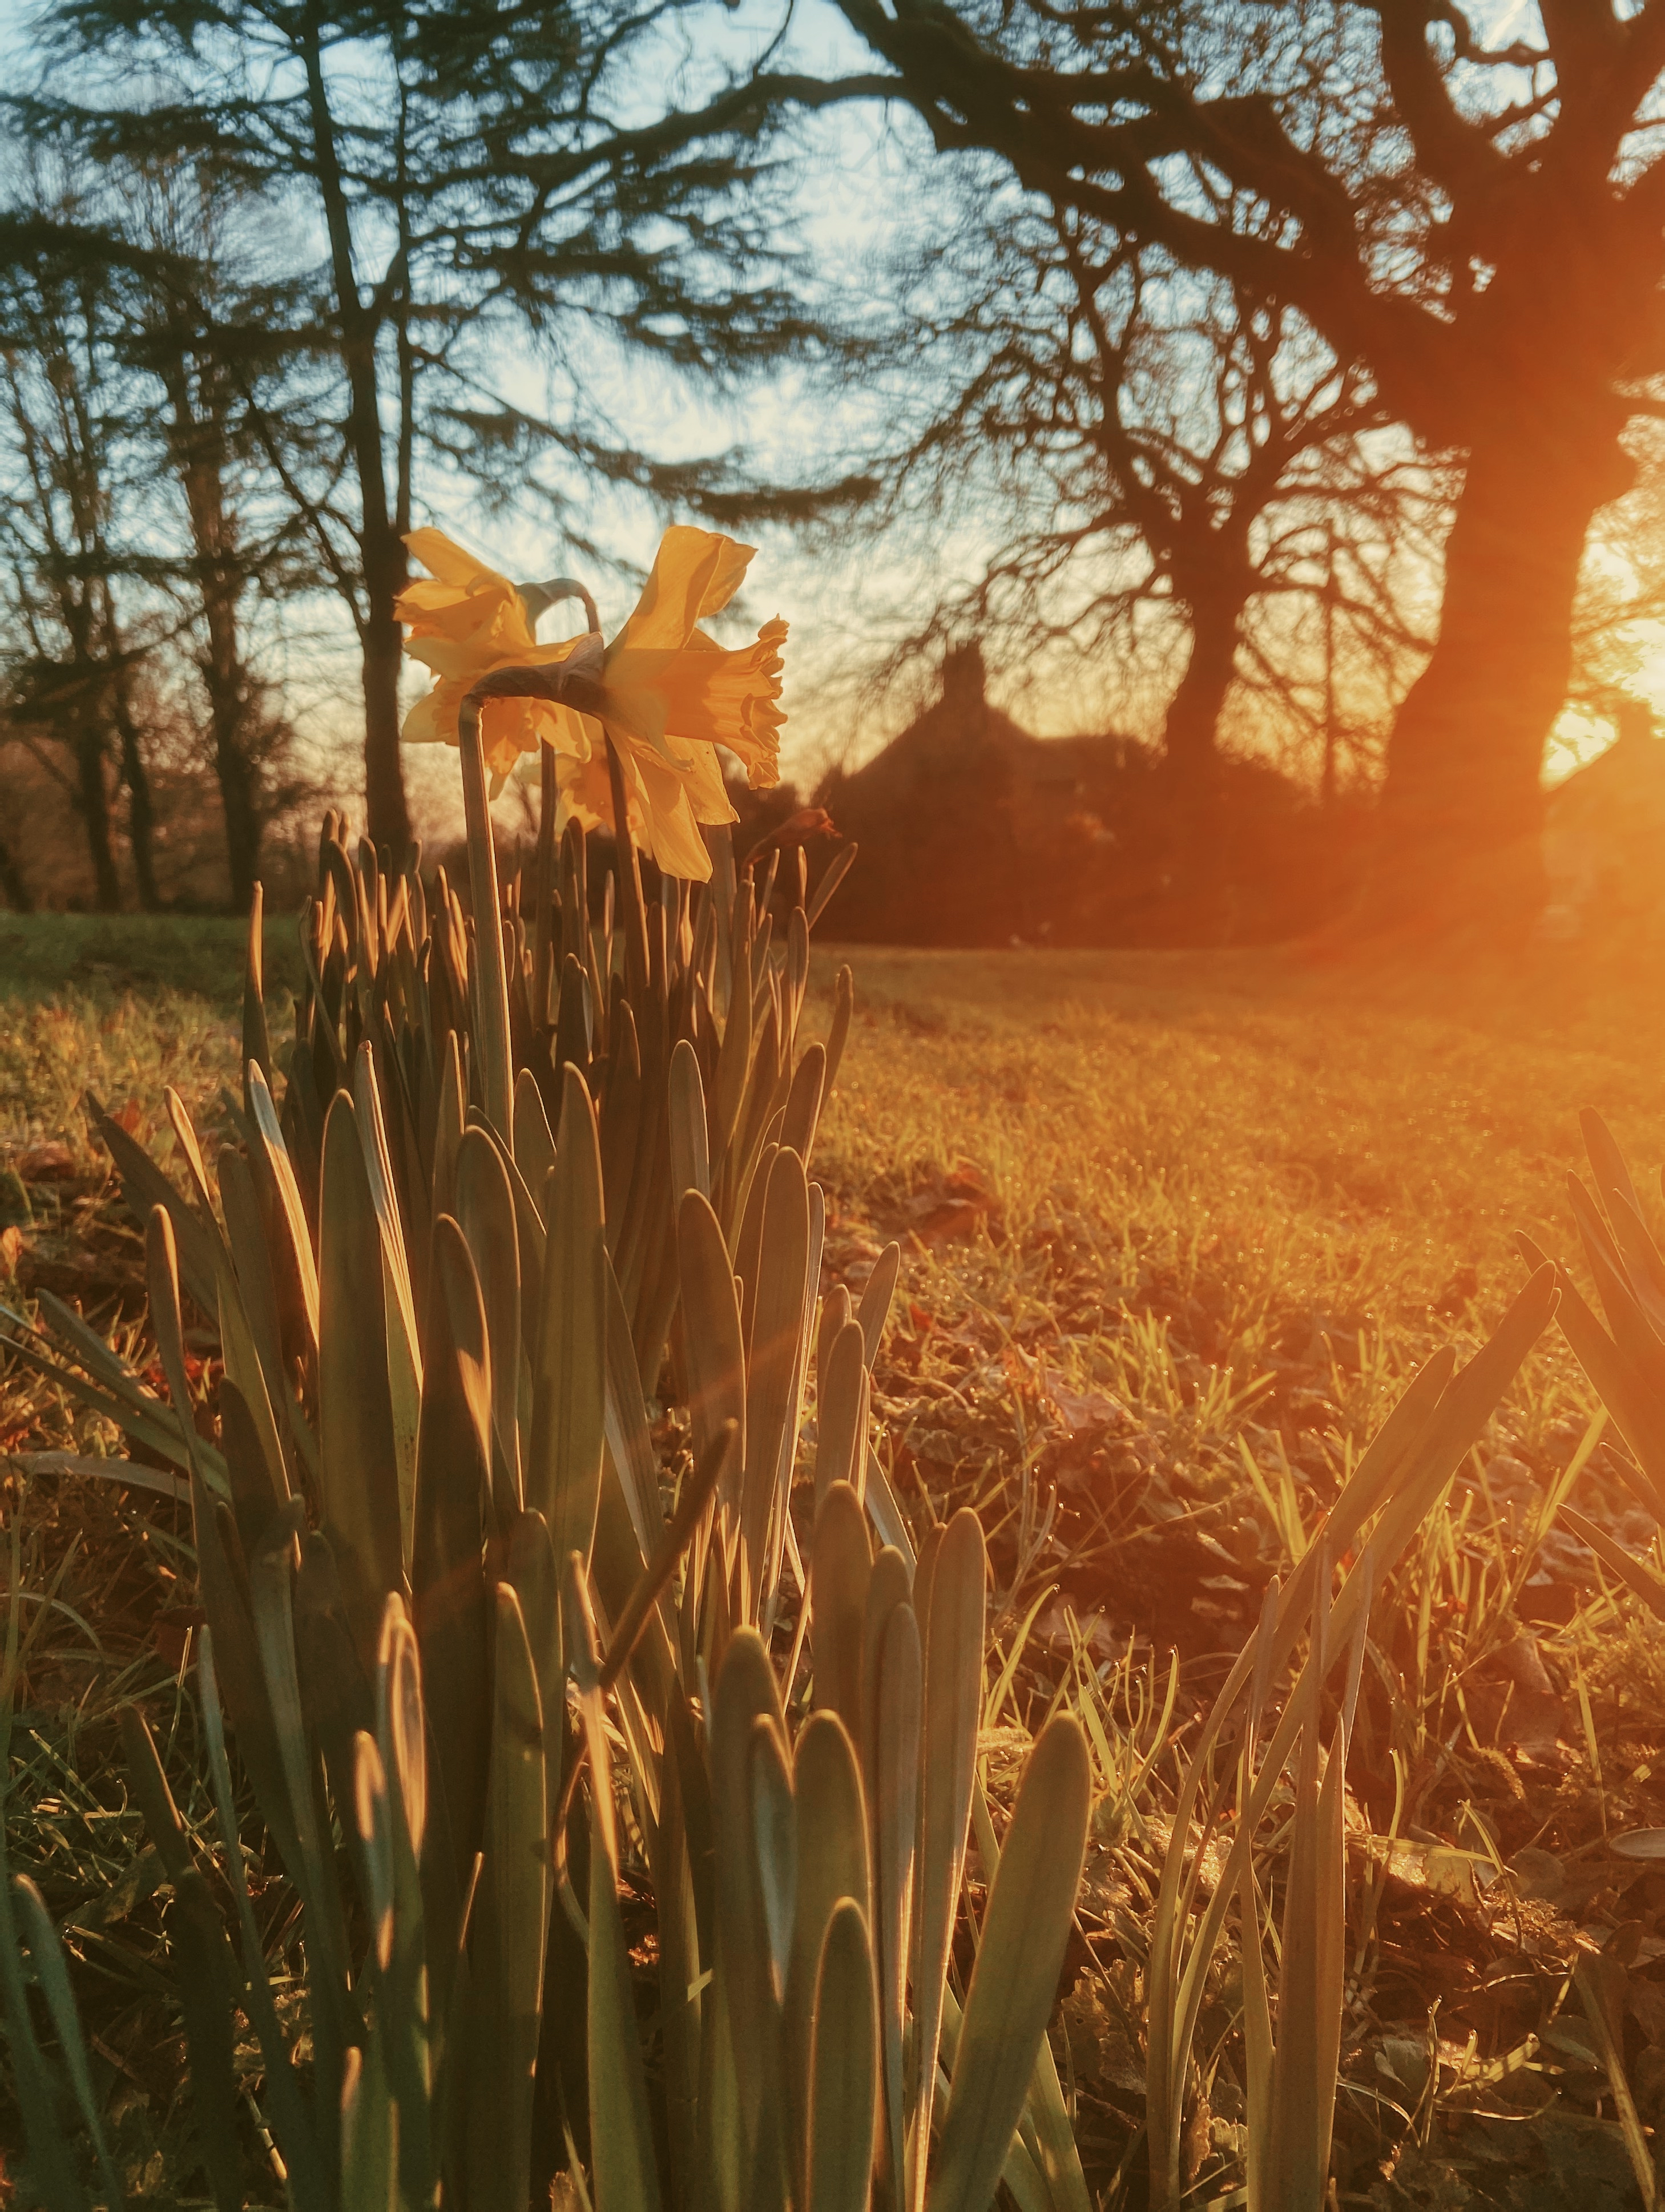 Daffodils blooming in the winter sun